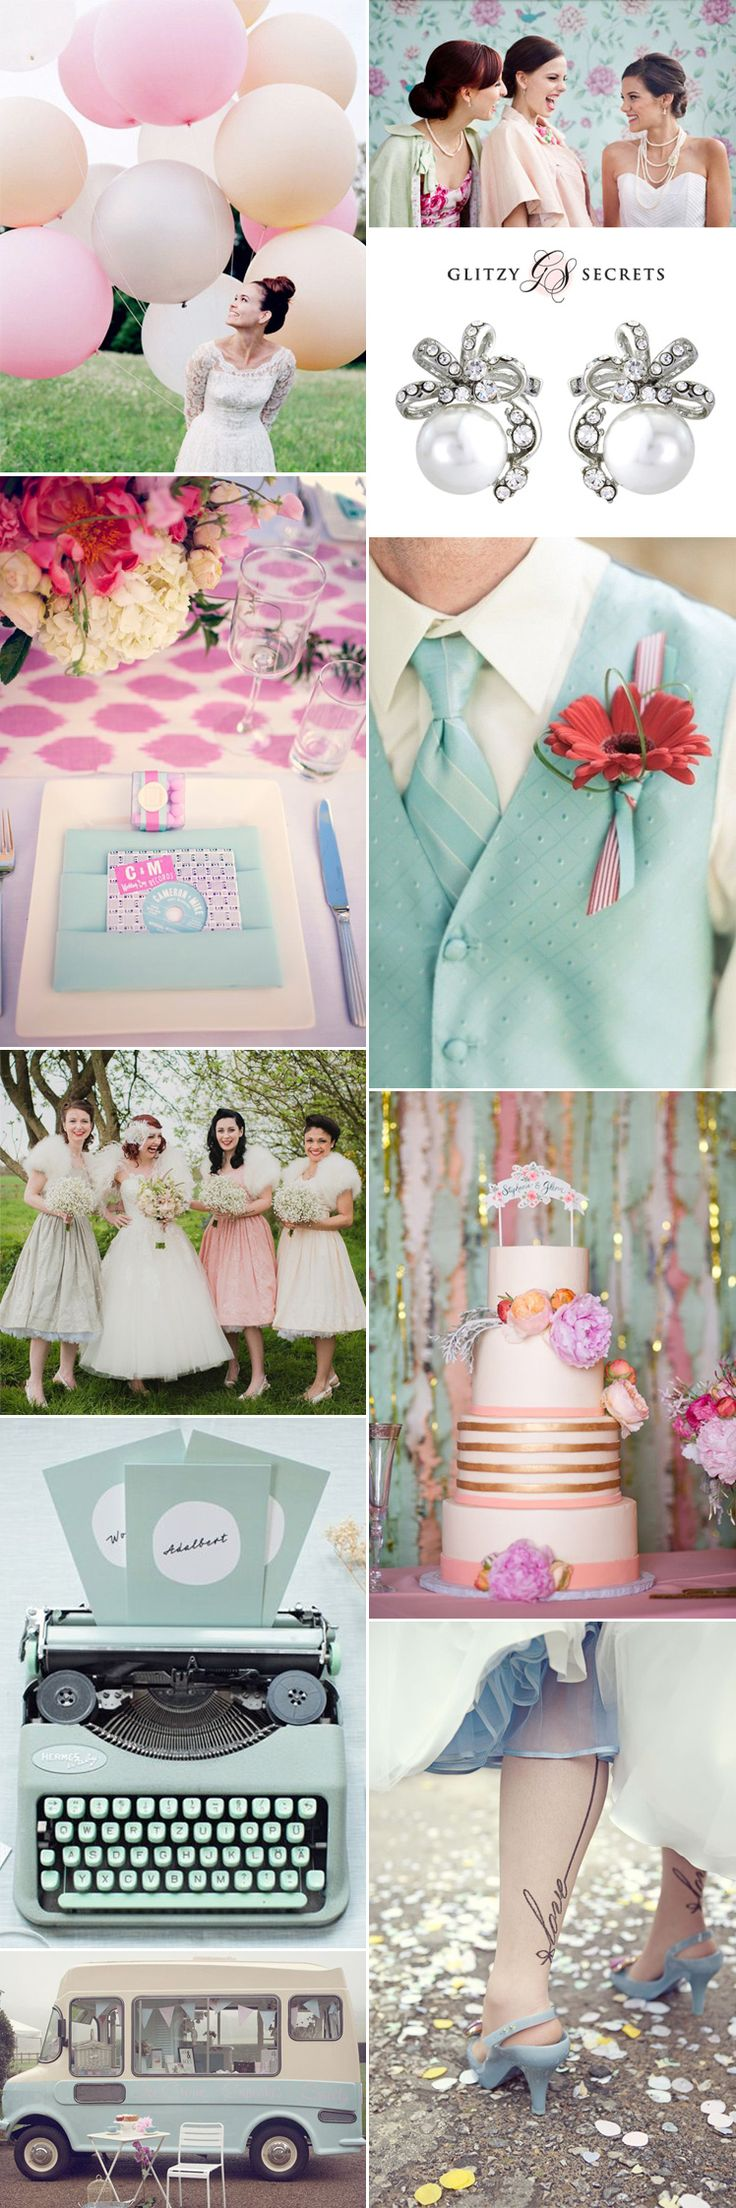 Fabulous 1950s style ideas for a retro wedding theme!  via Glitzy Secrets